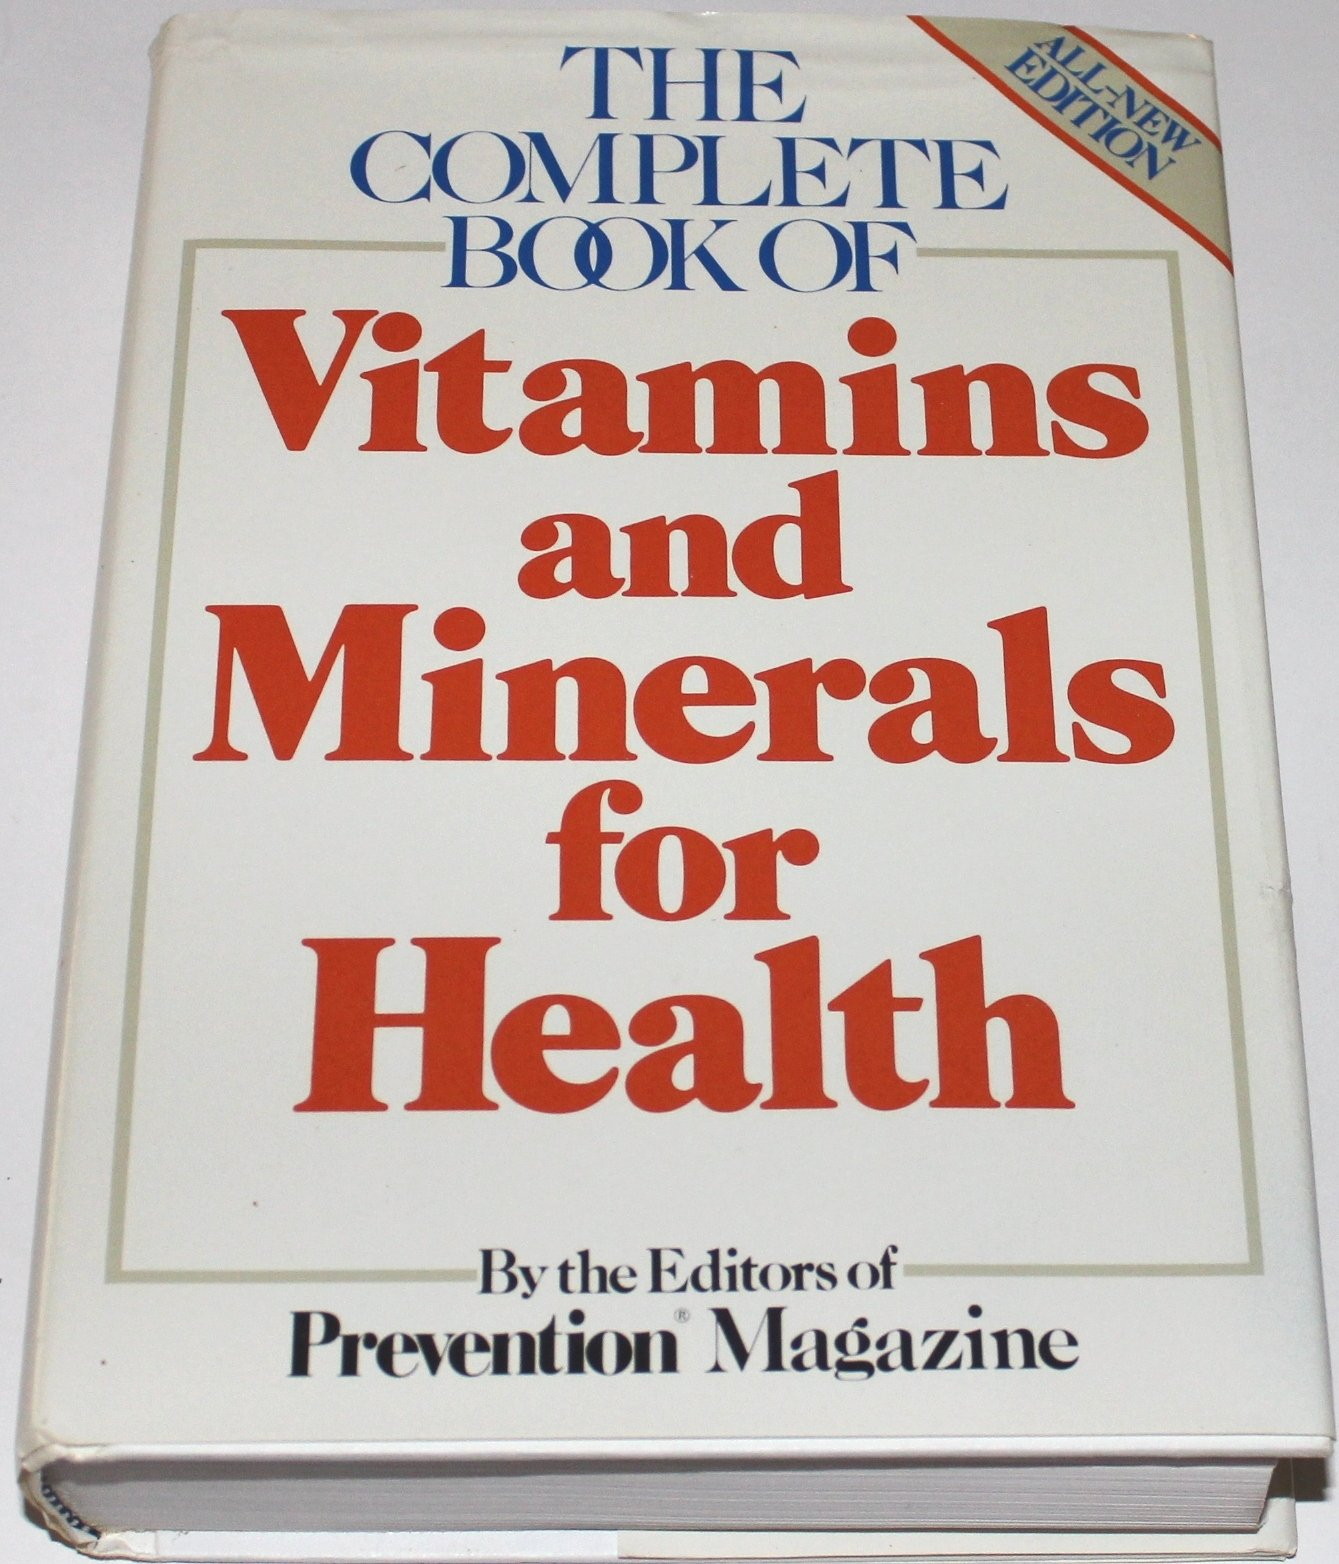 The Complete book of vitamins and minerals for health: Prevention Magazine,  Sharon Faelten: 9780878577491: Amazon.com: Books